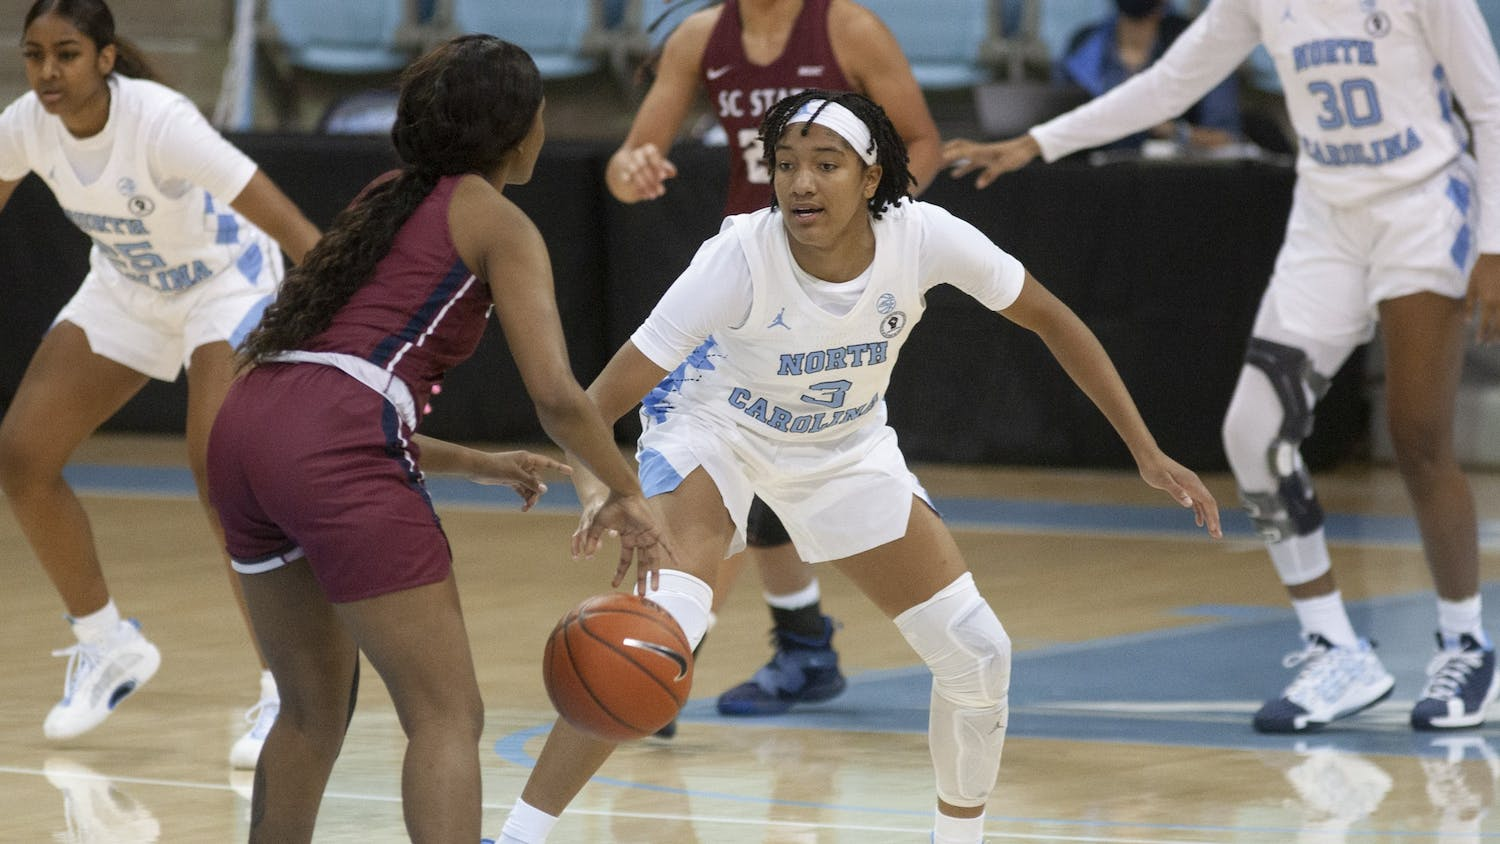 First-year guard Kennedy Todd-Williams (3) drives the ball upcourt against South Carolina State in Carmichael Arena on Dec. 3, 2020. UNC beat SC State 98-28.